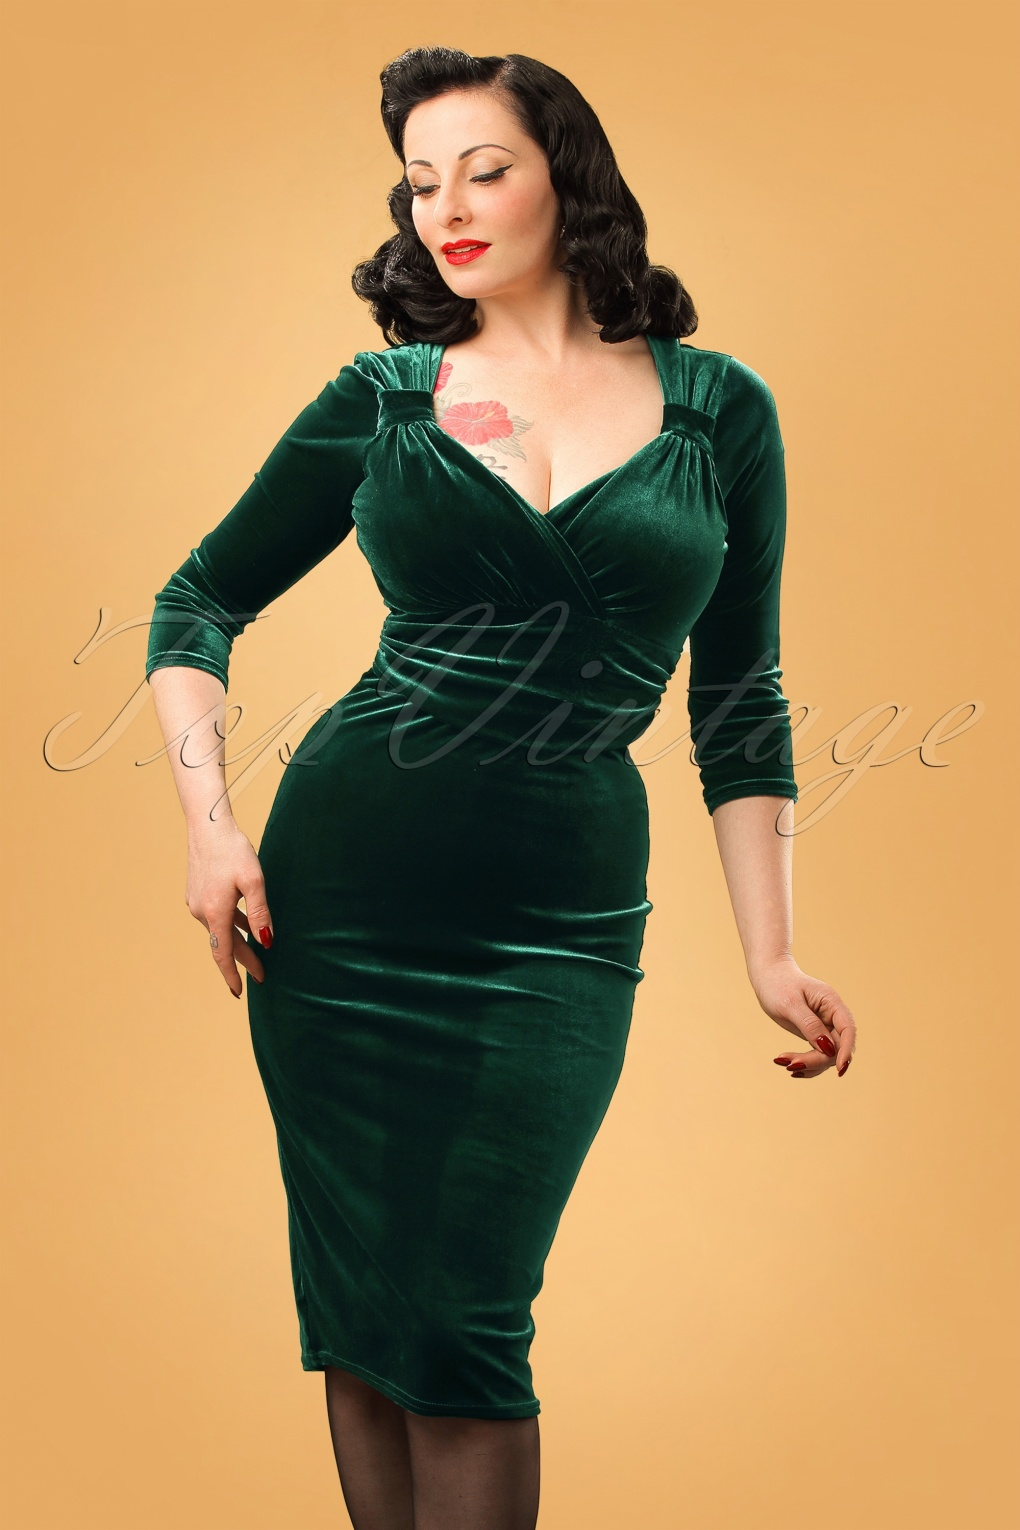 What Did Women Wear in the 1950s? 1950s Fashion Guide 50s Annabelle Velvet Pencil Dress in Dark Green £45.42 AT vintagedancer.com